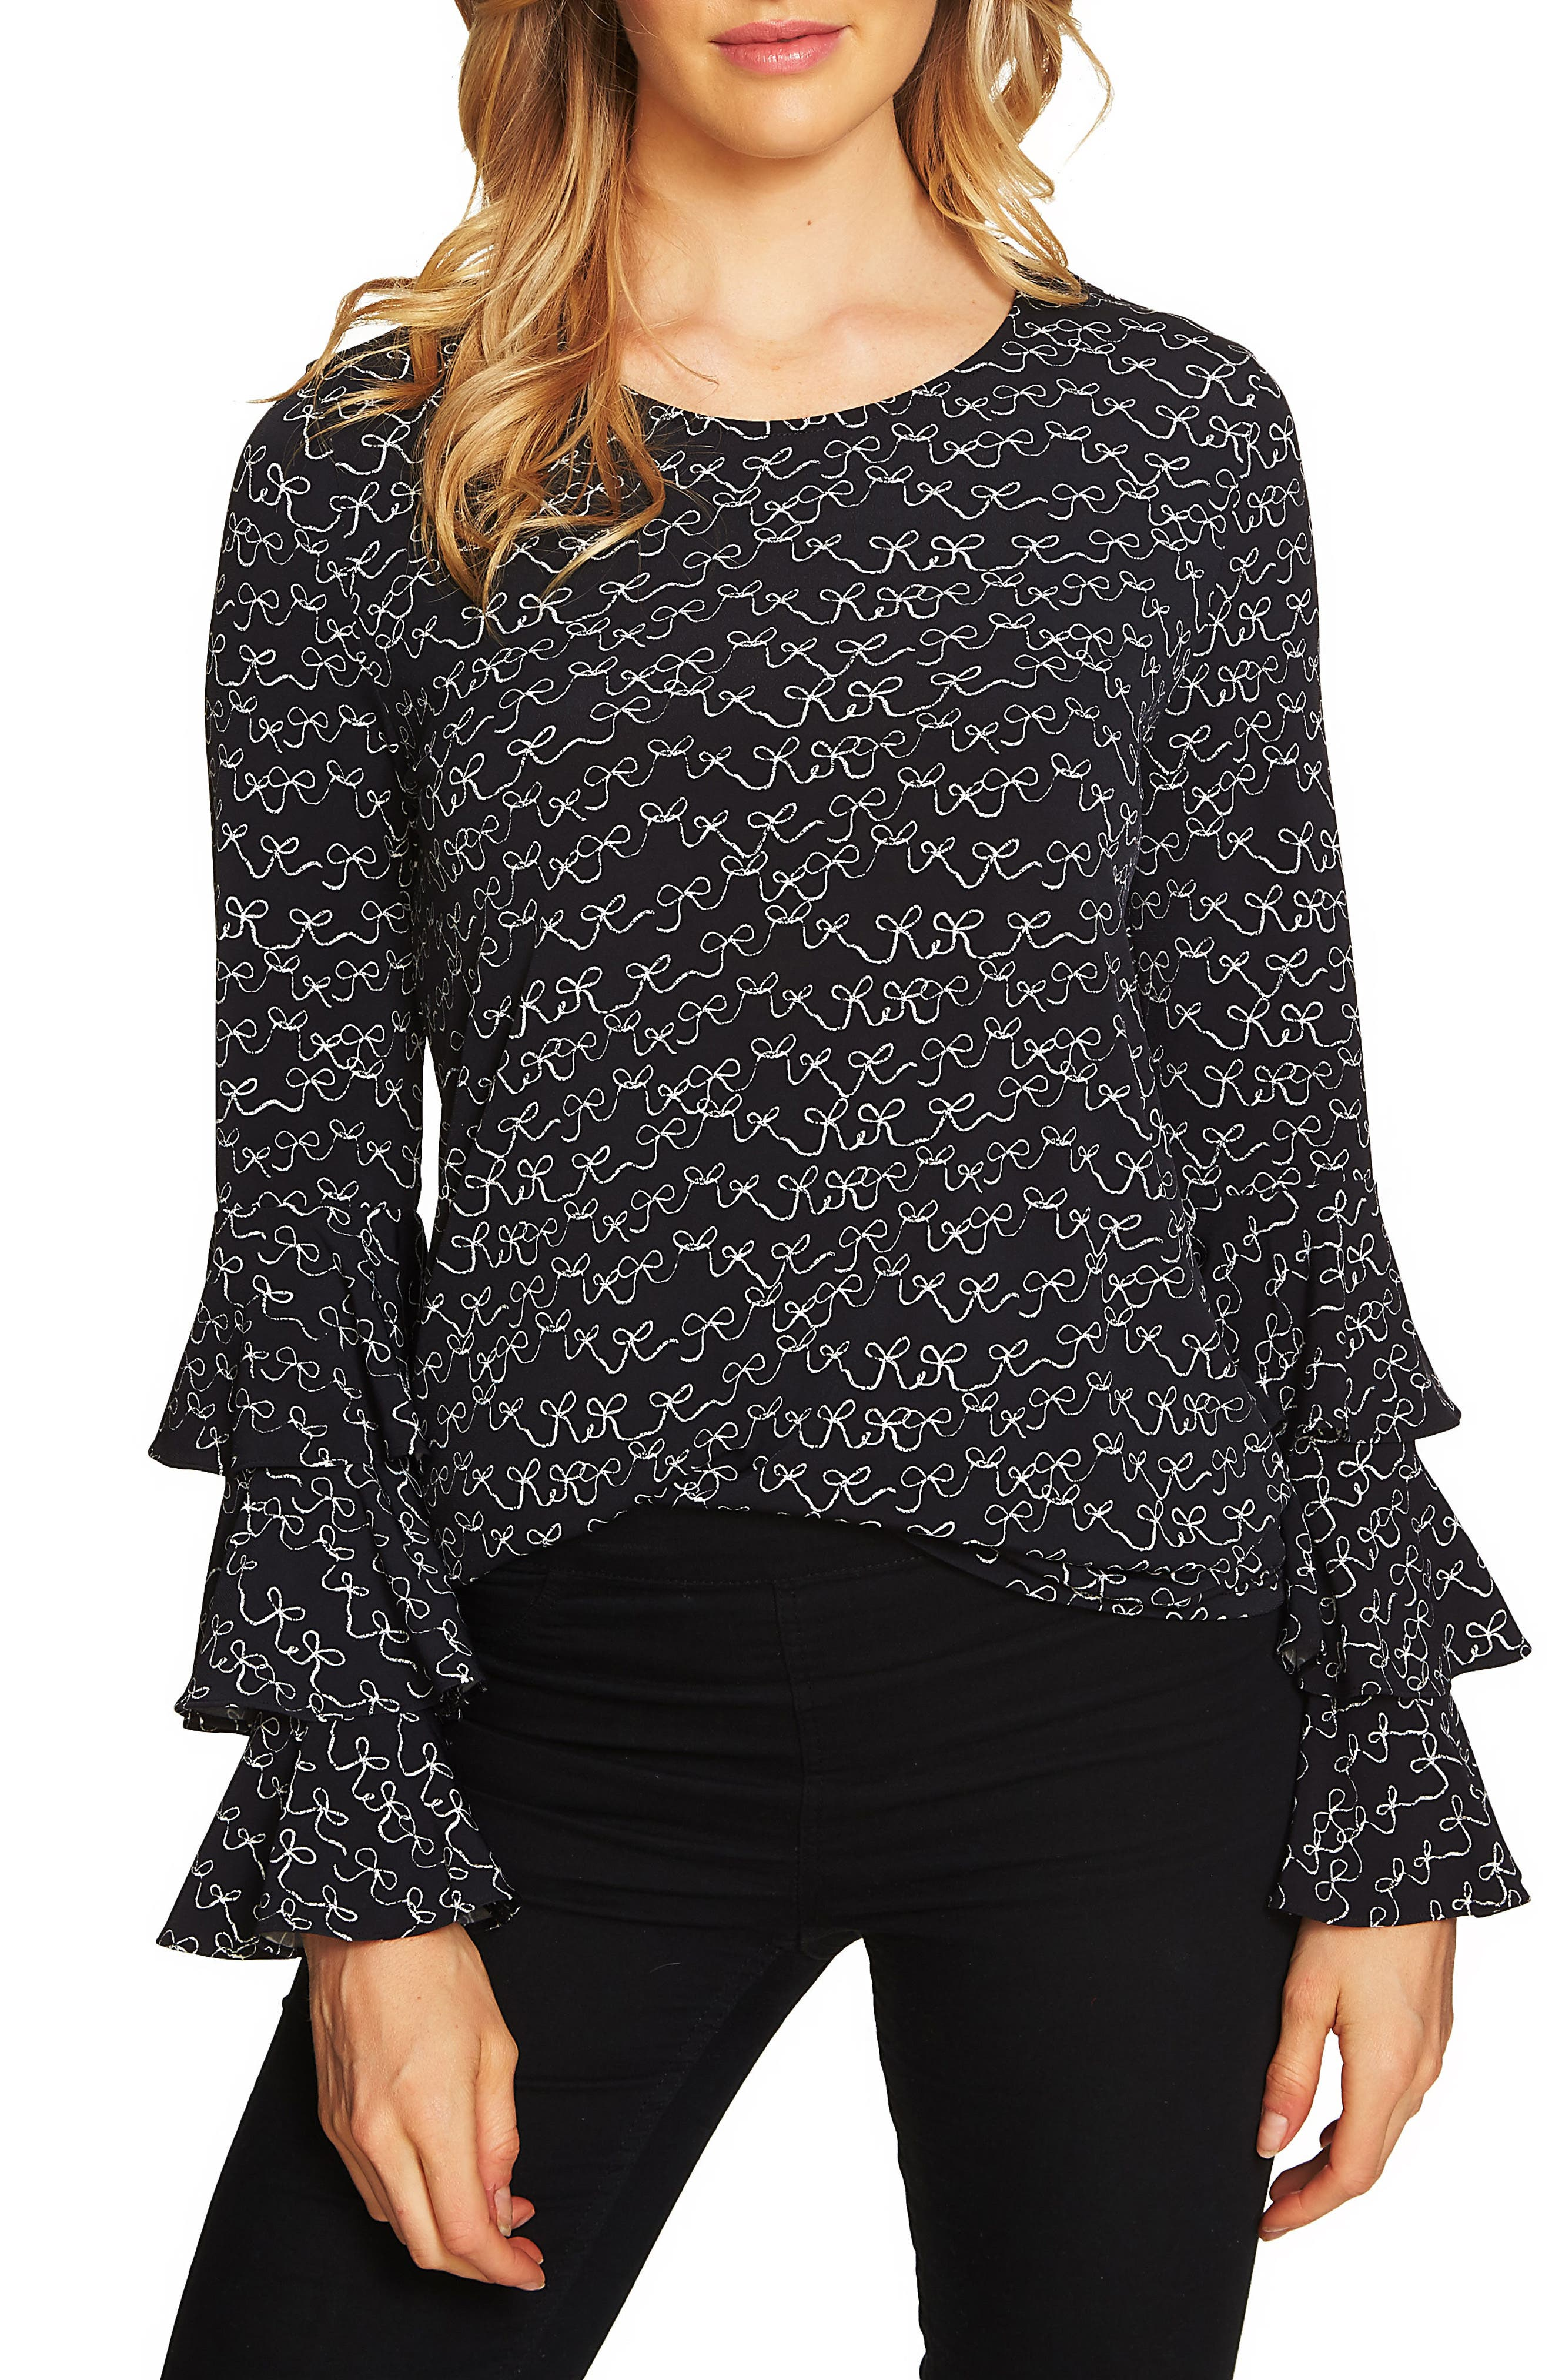 Danity Tiered Ruffle Bell Sleeve Top,                             Main thumbnail 1, color,                             001